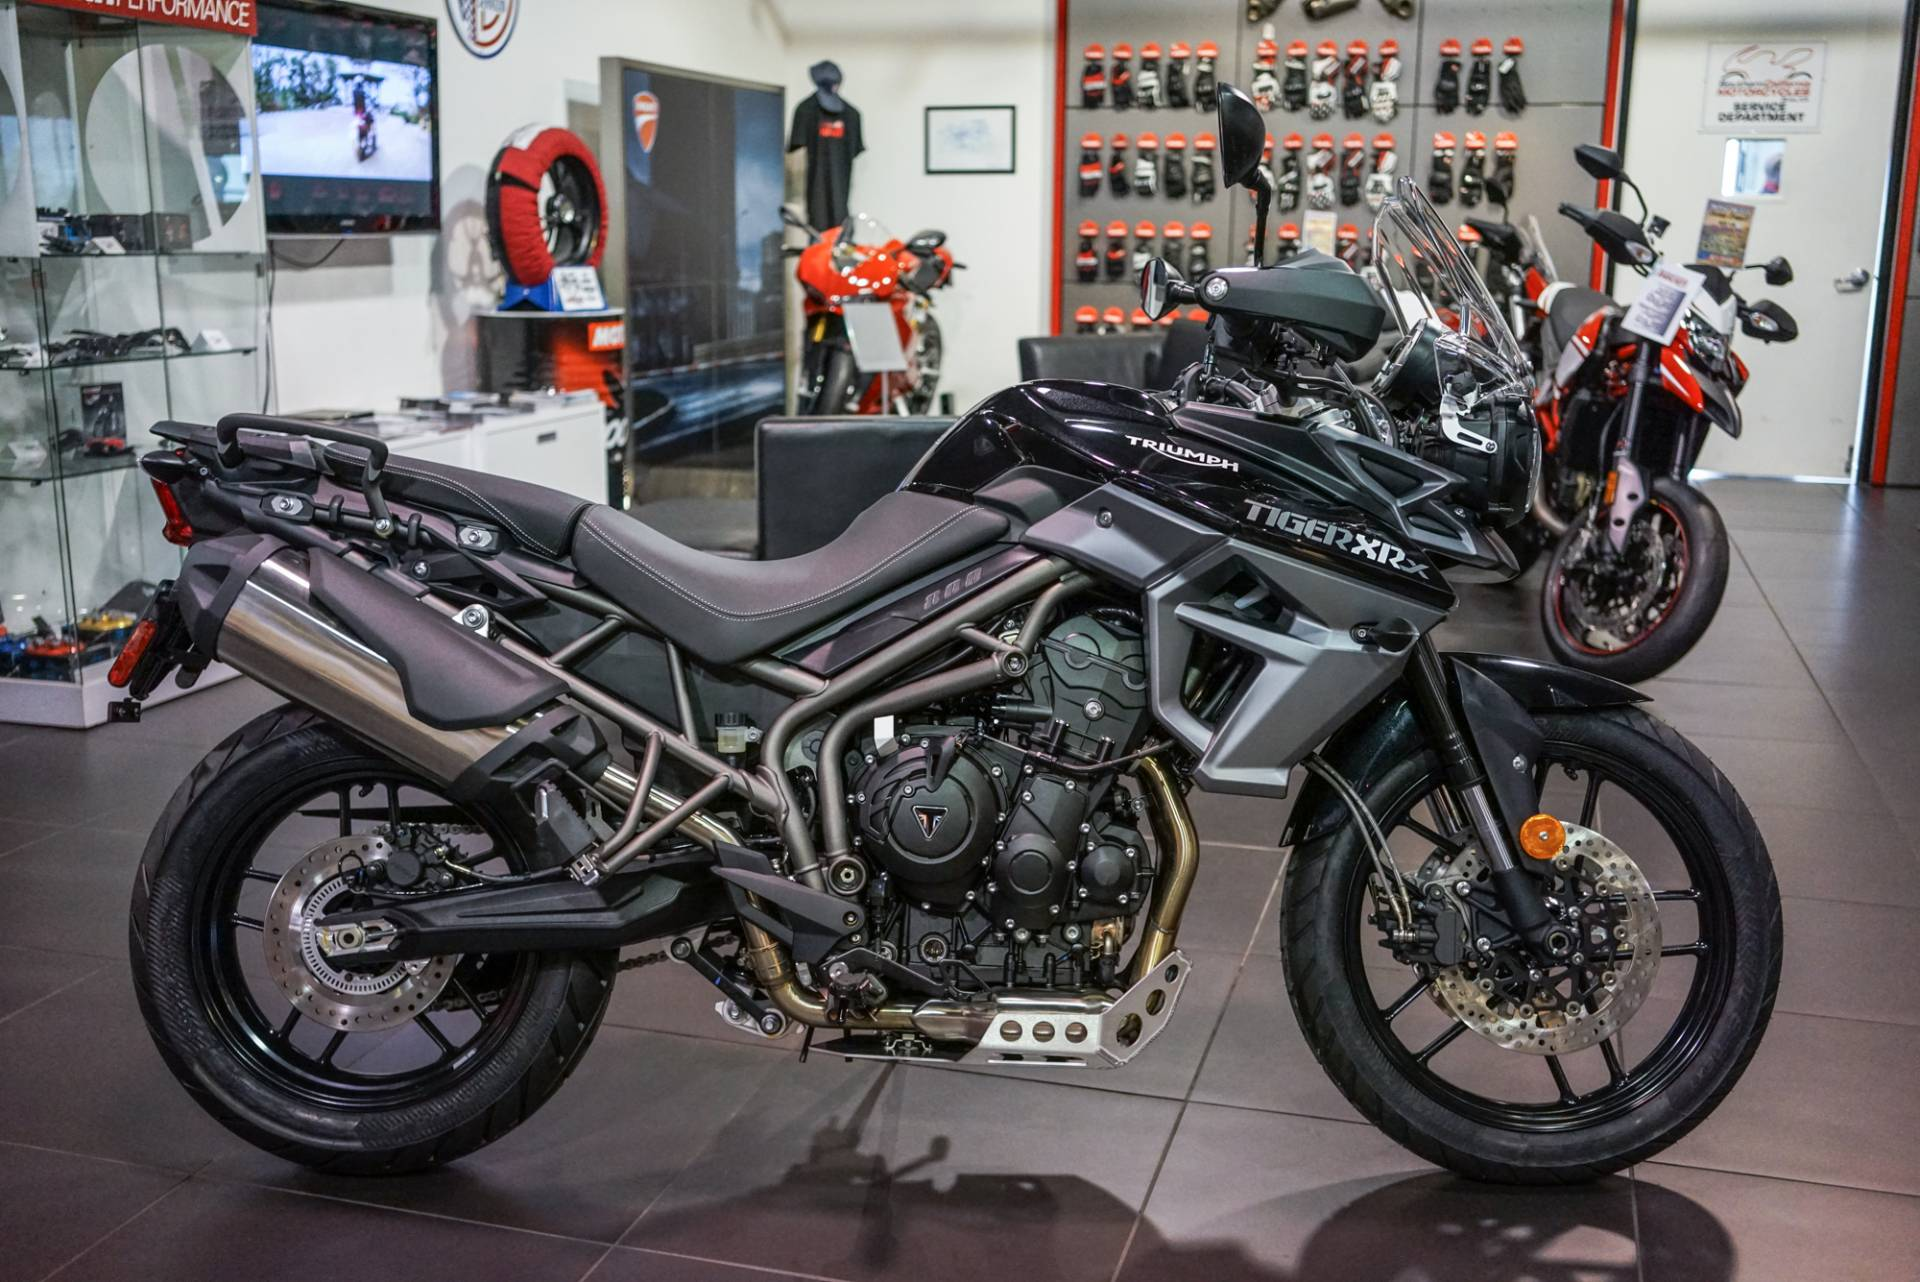 New 2018 Triumph Tiger 800 Xrx Low Motorcycles In Brea Ca